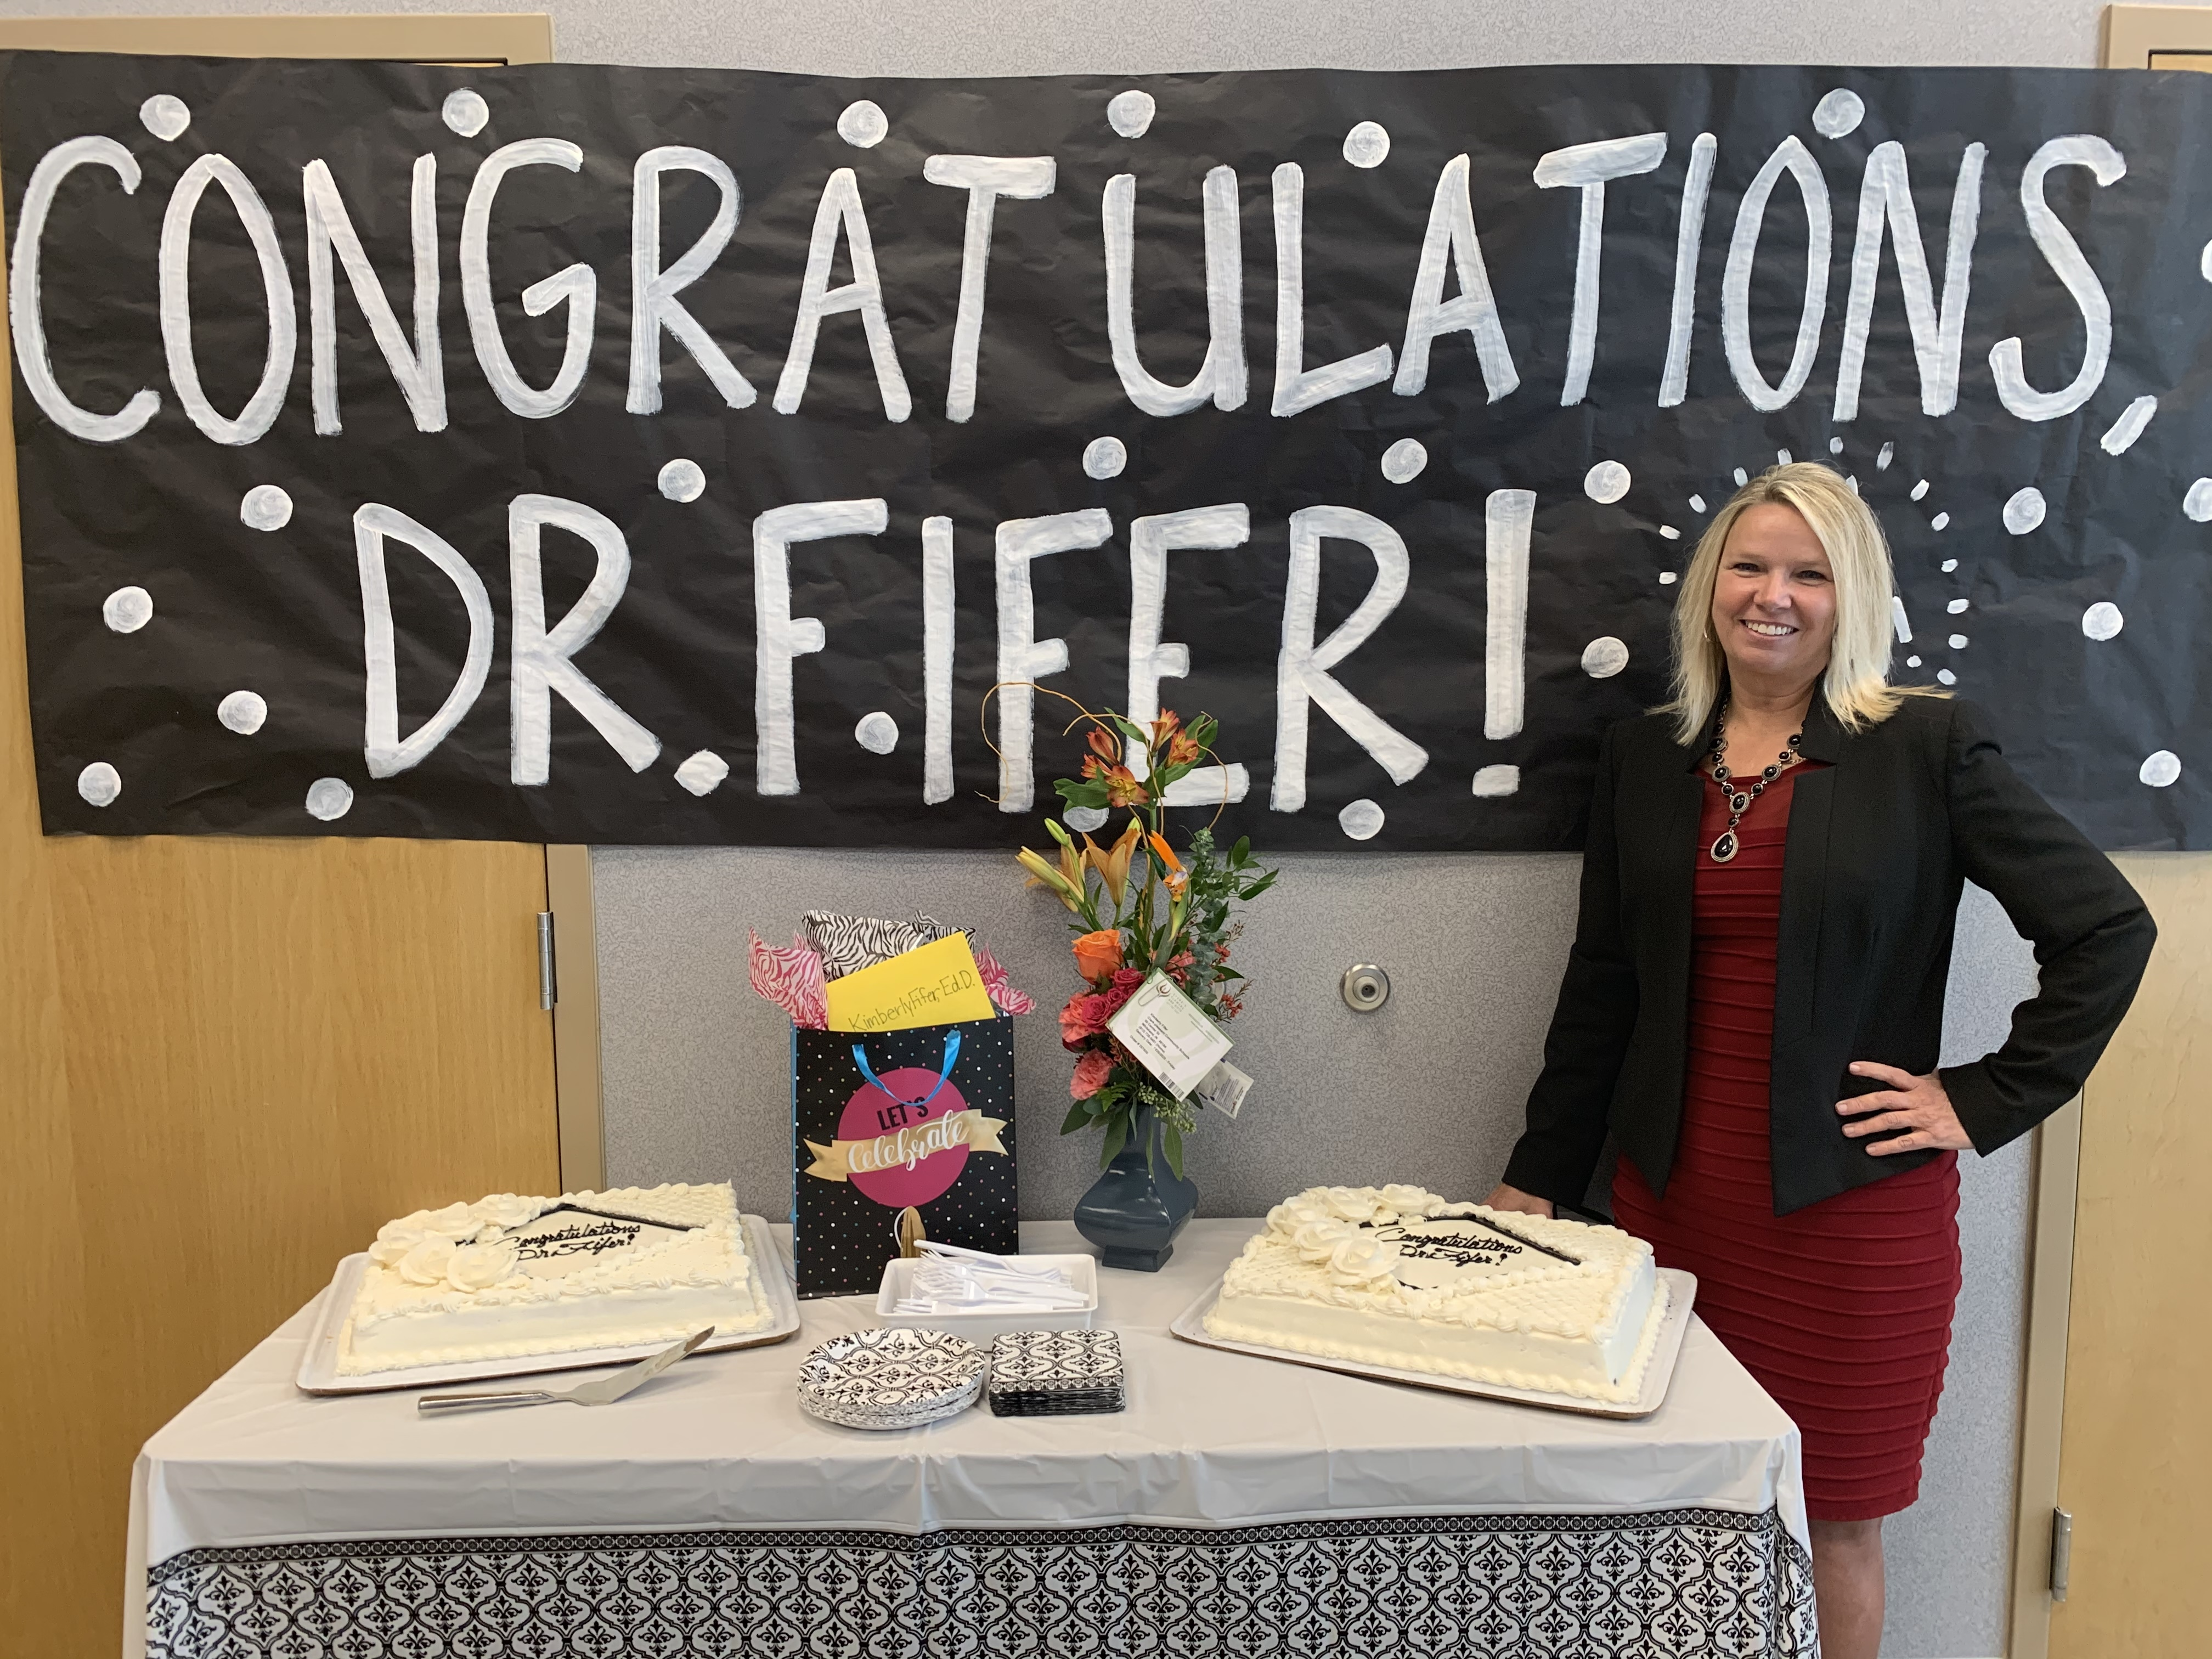 Congratulations to Dr. Kimberly Fifer.